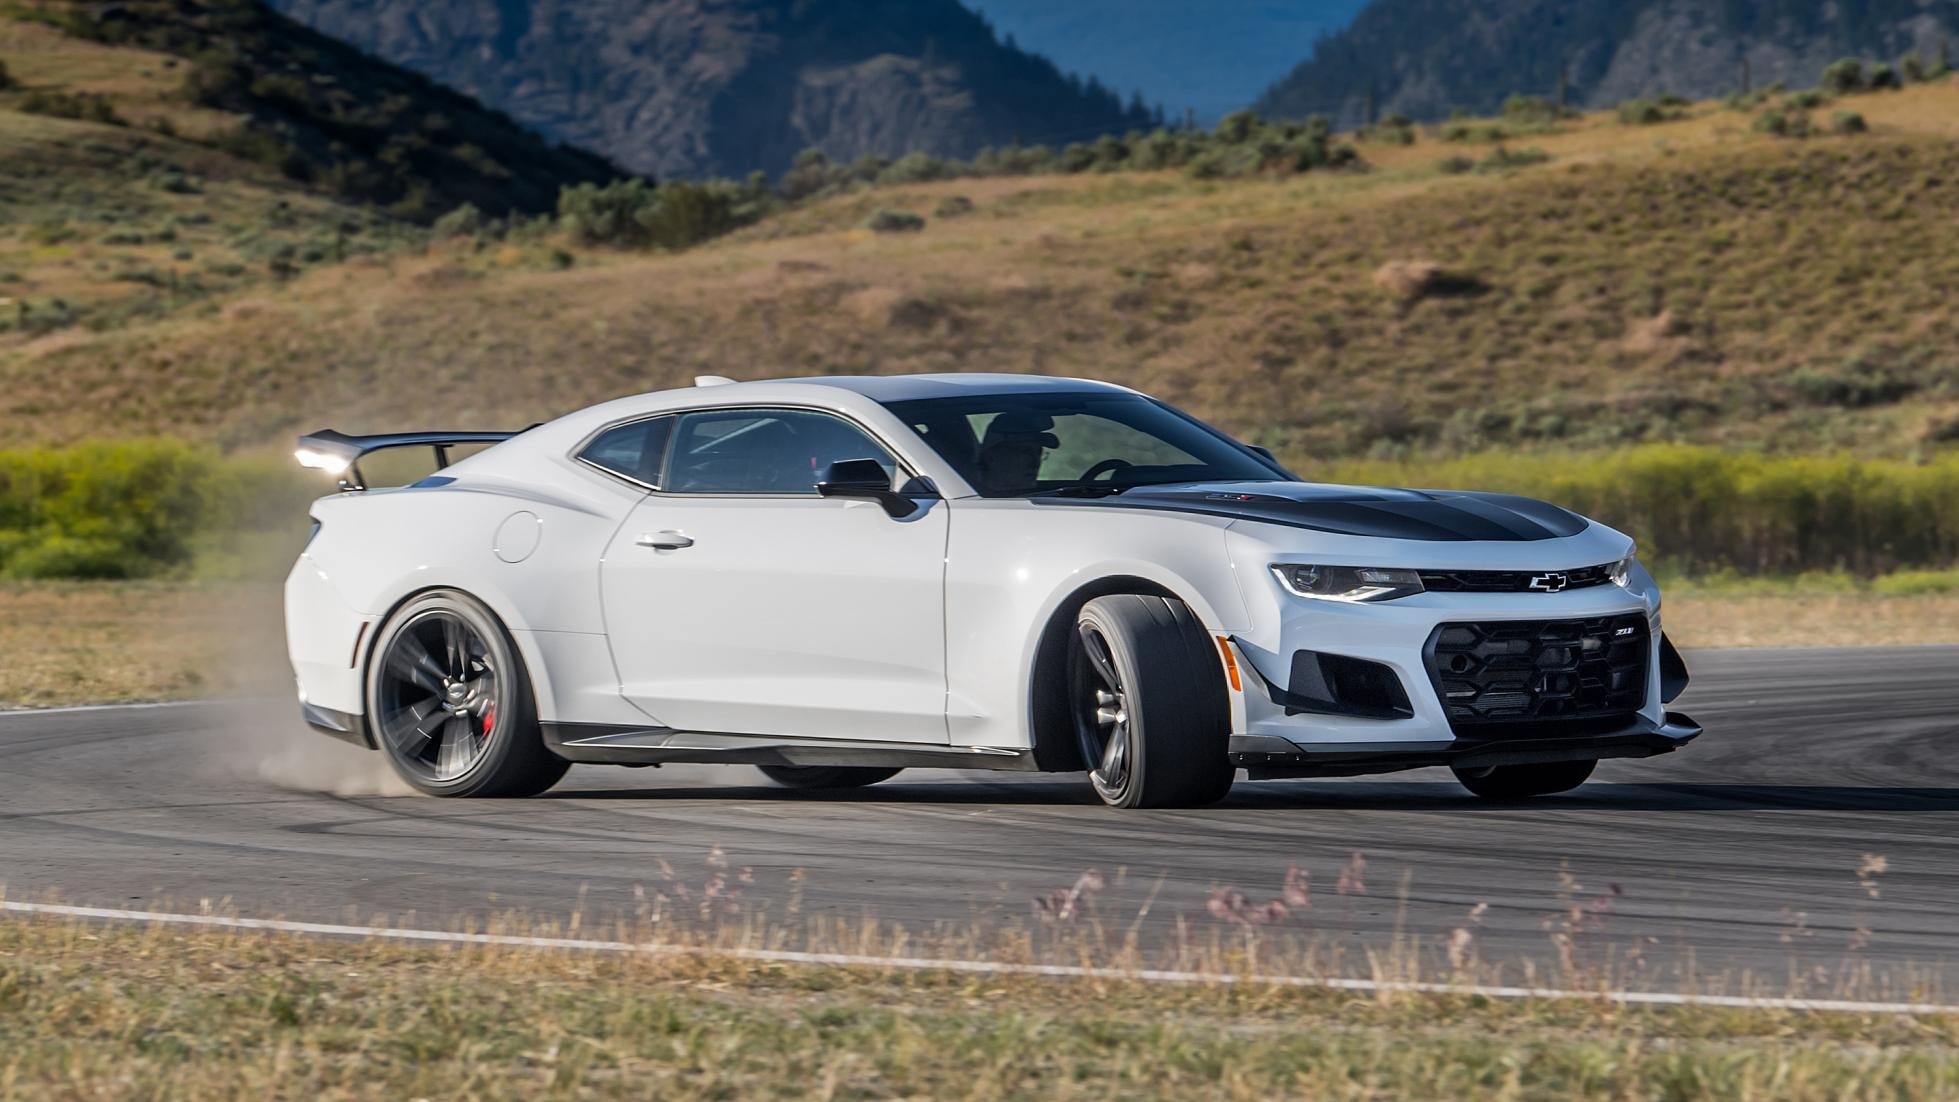 The Chevy Camaro Zl1 1le Now Gets A Ten Speed Gearbox Top Gear